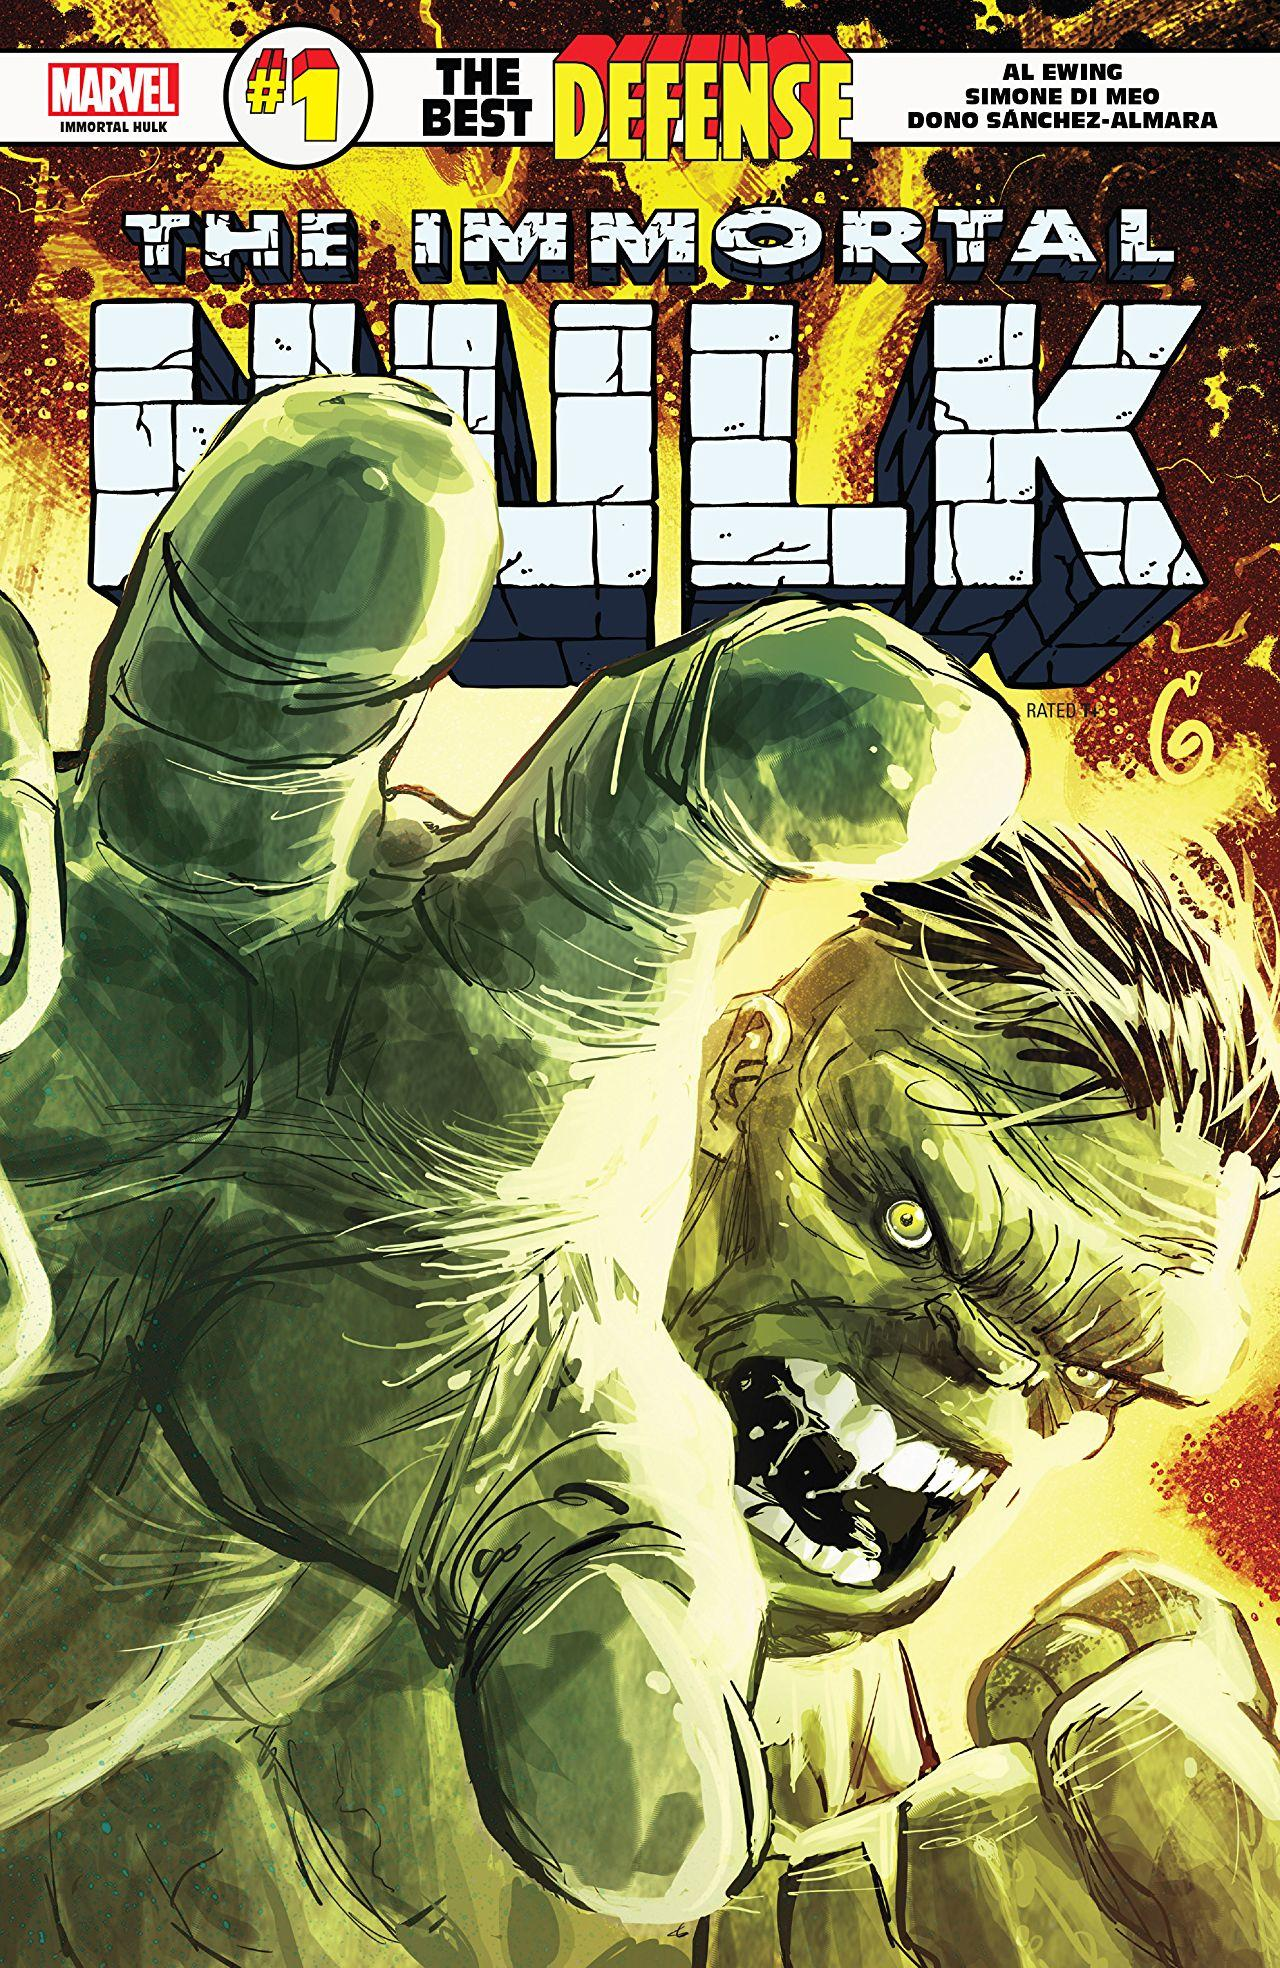 Immortal Hulk: The Best Defense #1 cover by Ron Garney